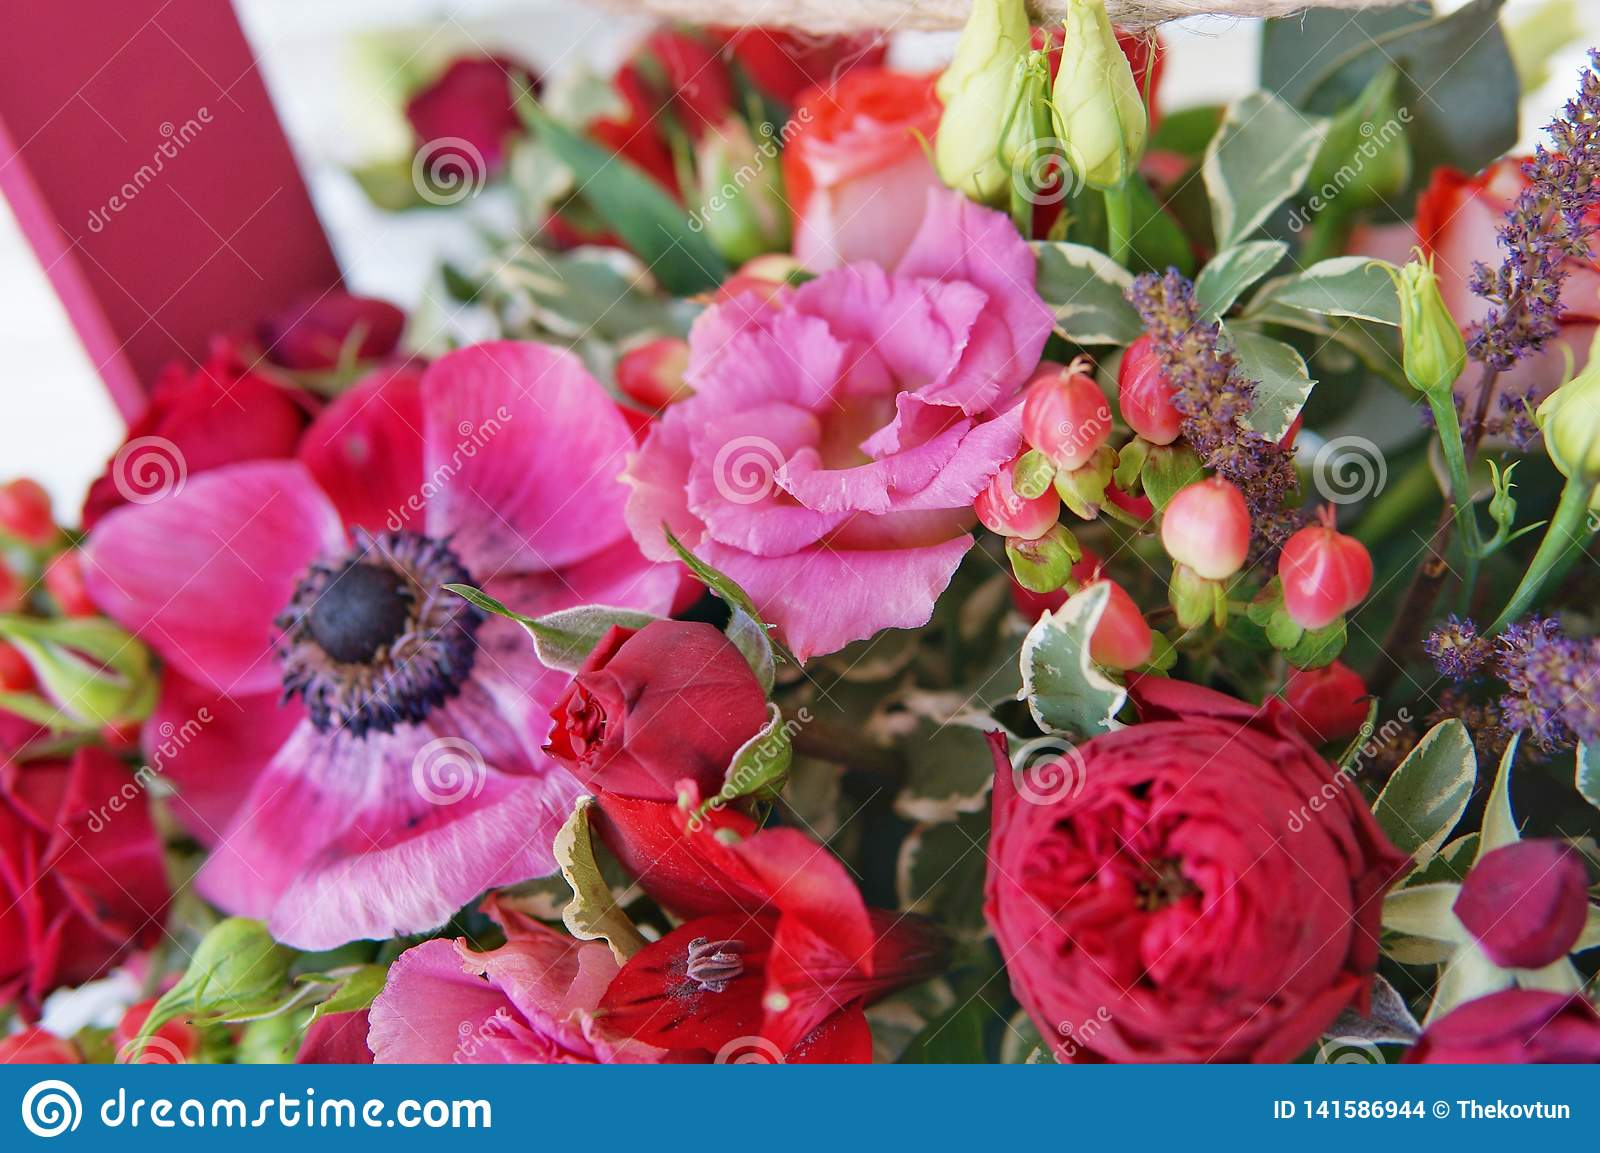 Beautiful floral arrangement of red, pink and burgundy flowers in a pink wooden box